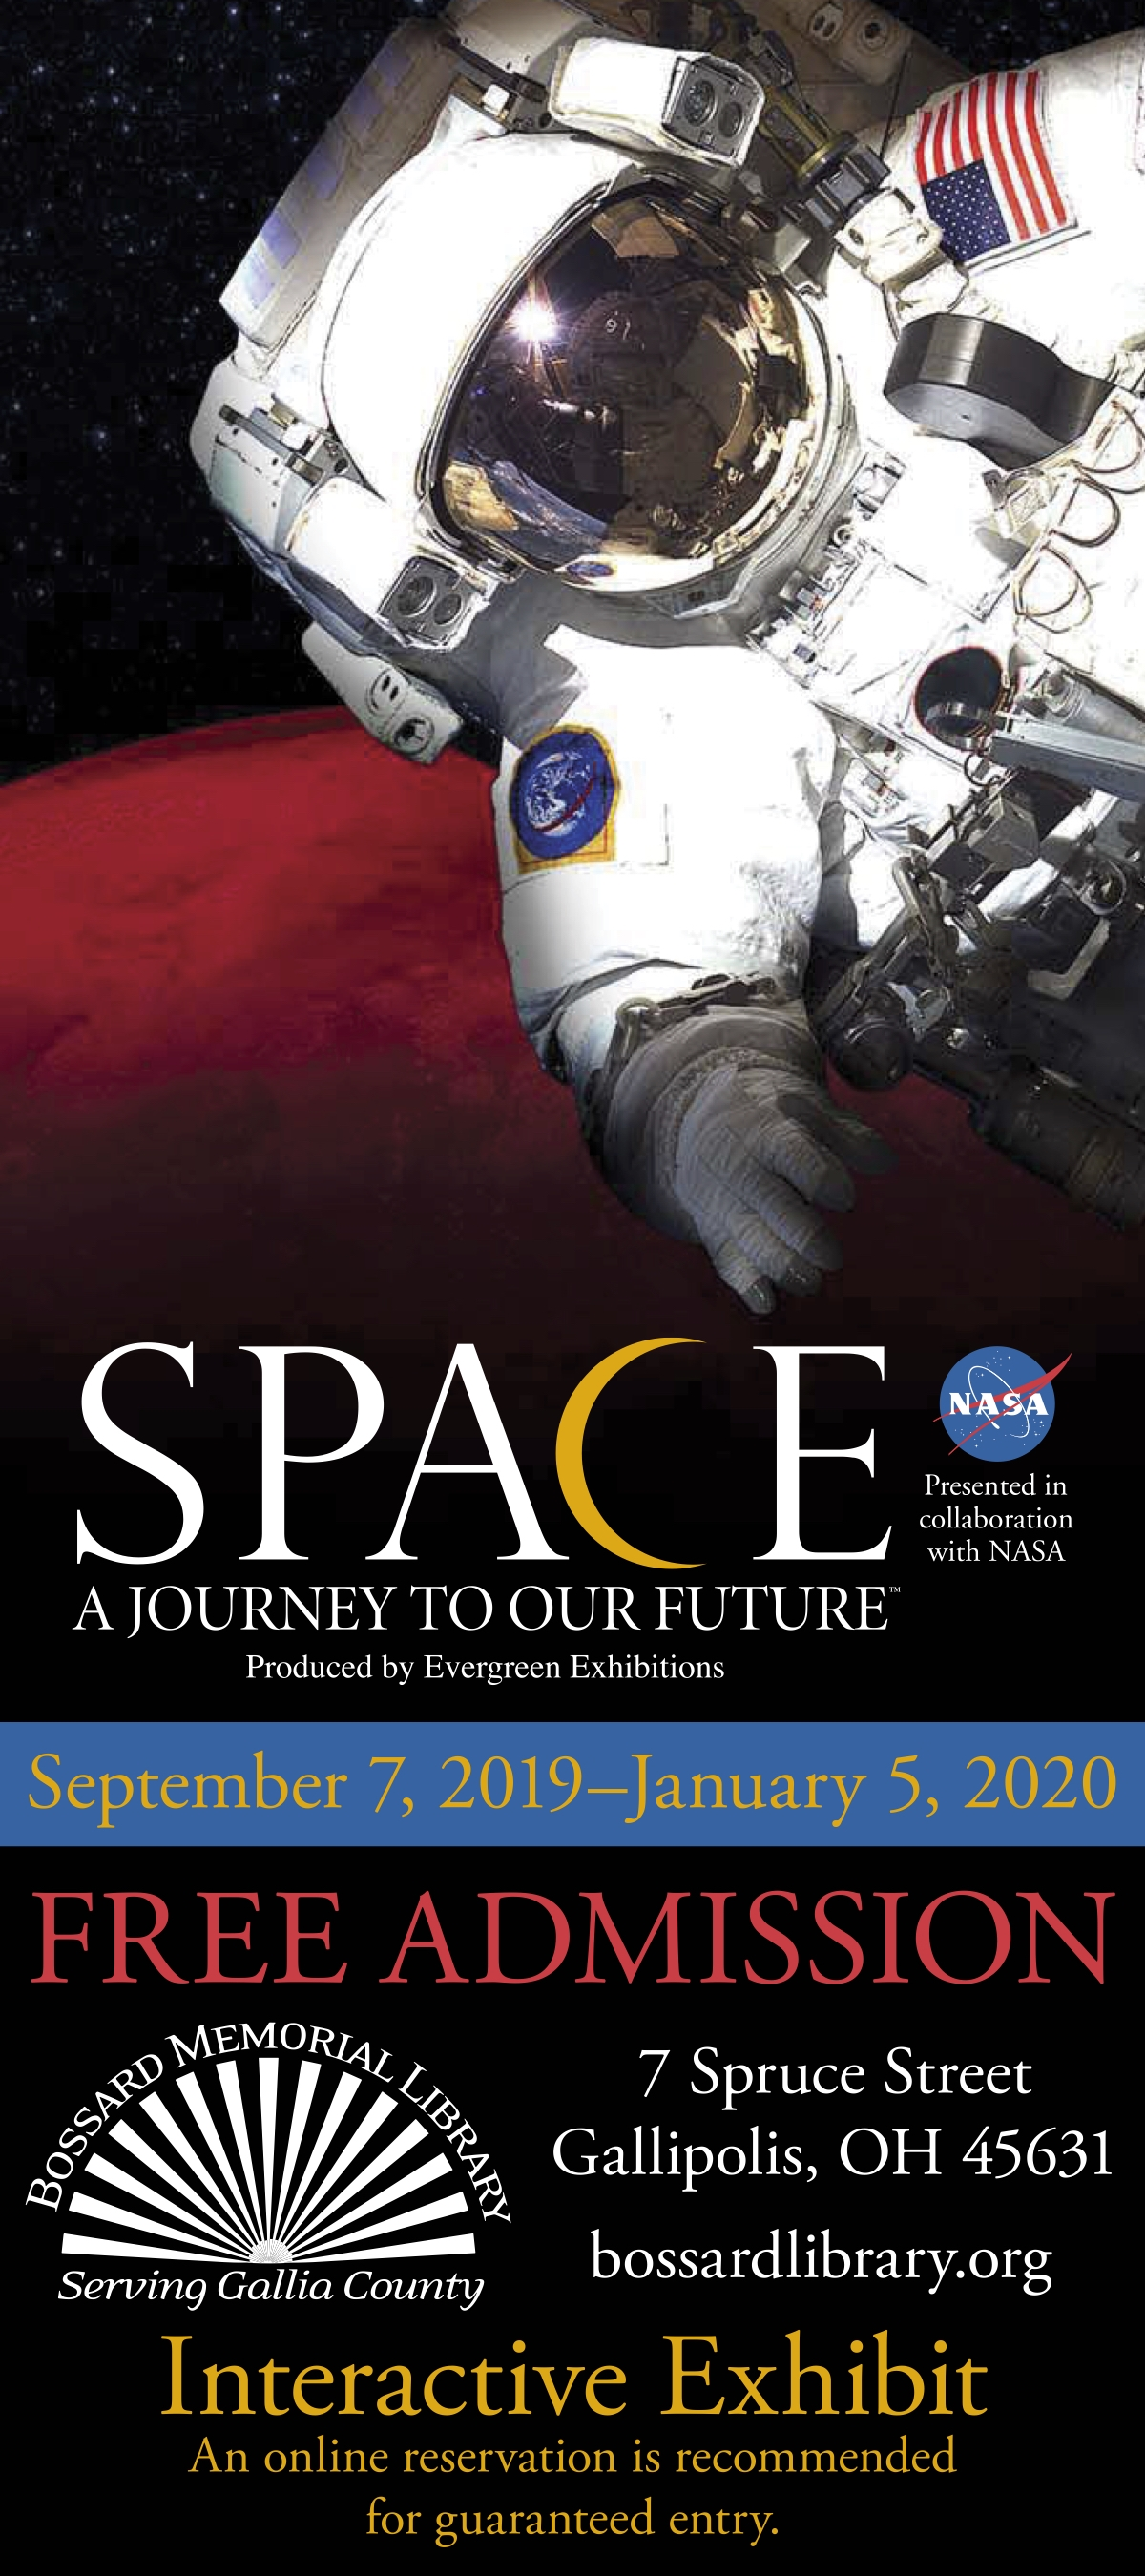 Space:  A Journey to Our Future exhibition